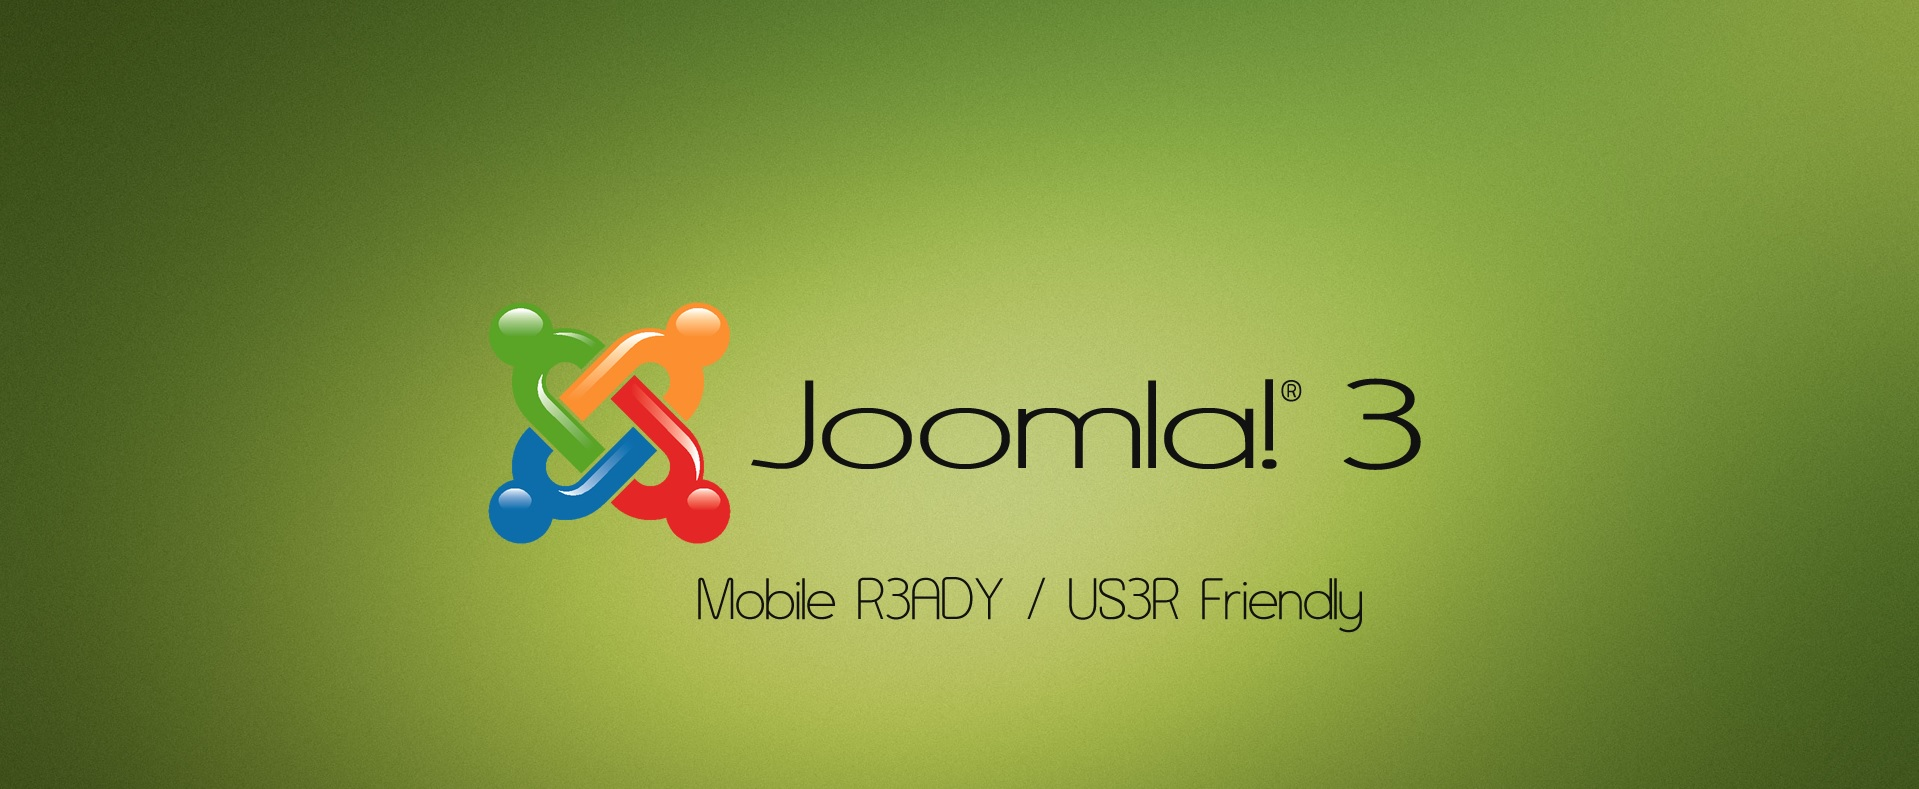 6 Best Joomla Templates With Powerful Features And Stunning Design